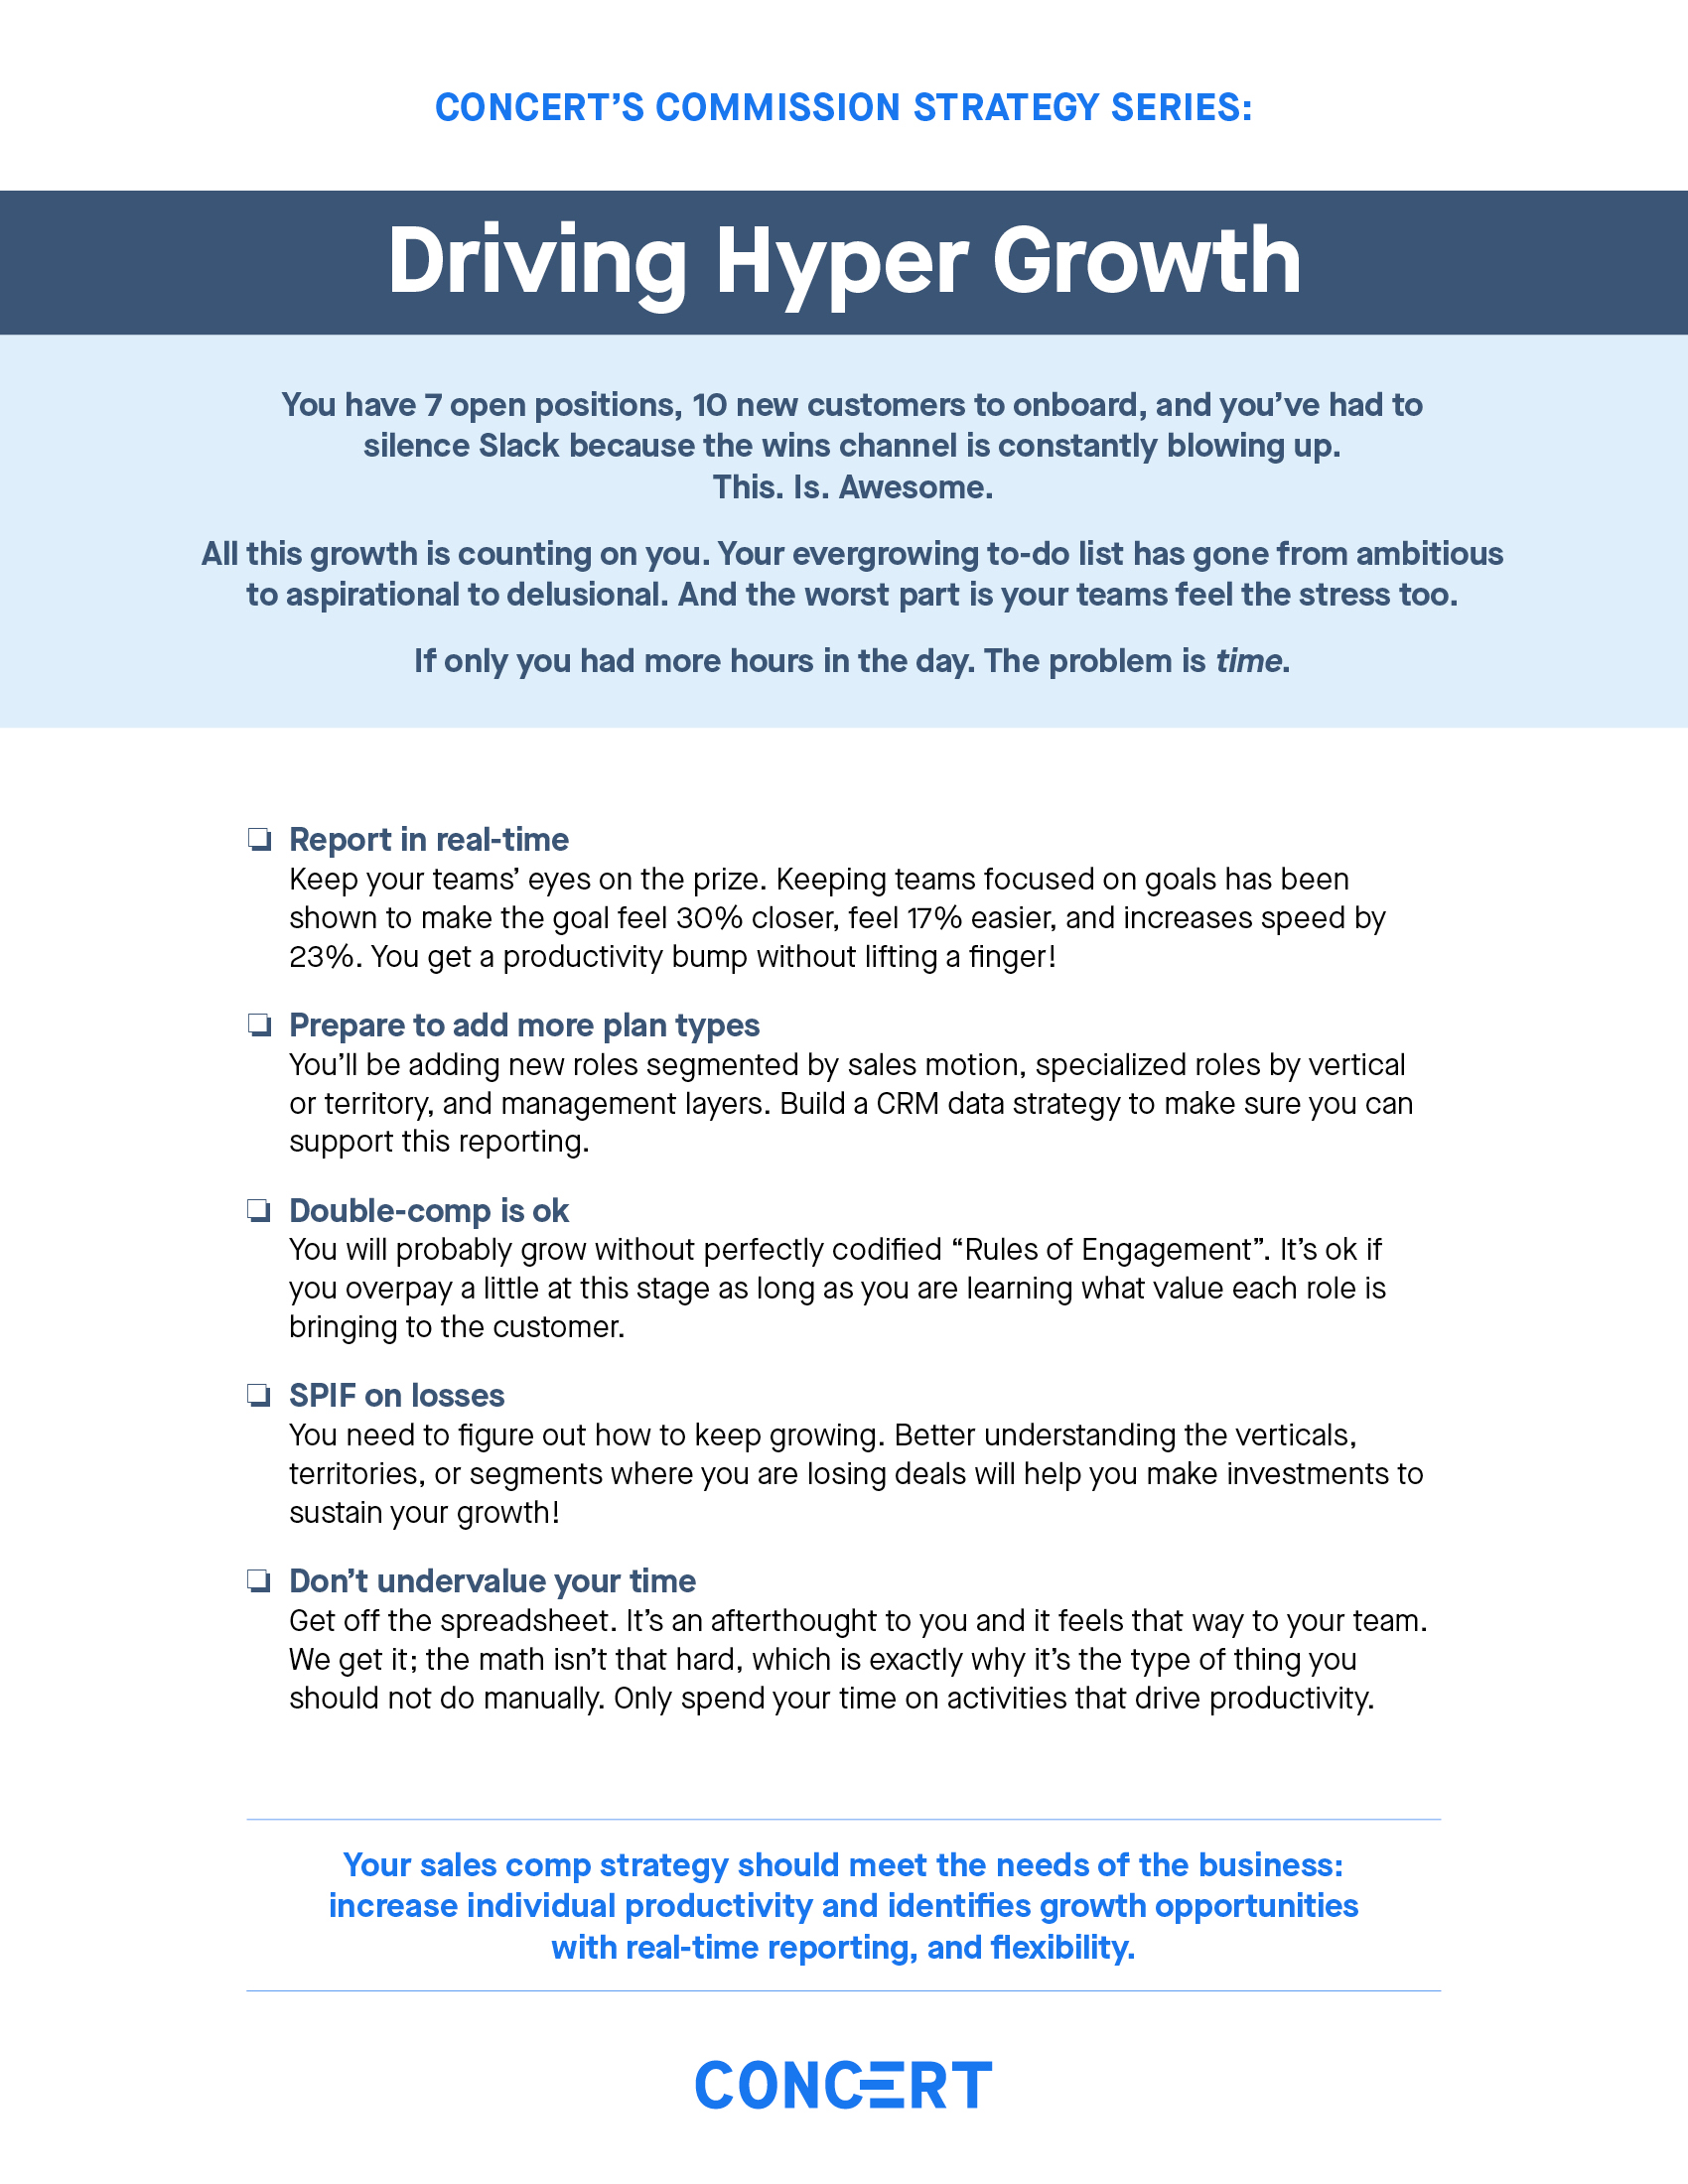 Commission Strategy: Driving Hyper Growth